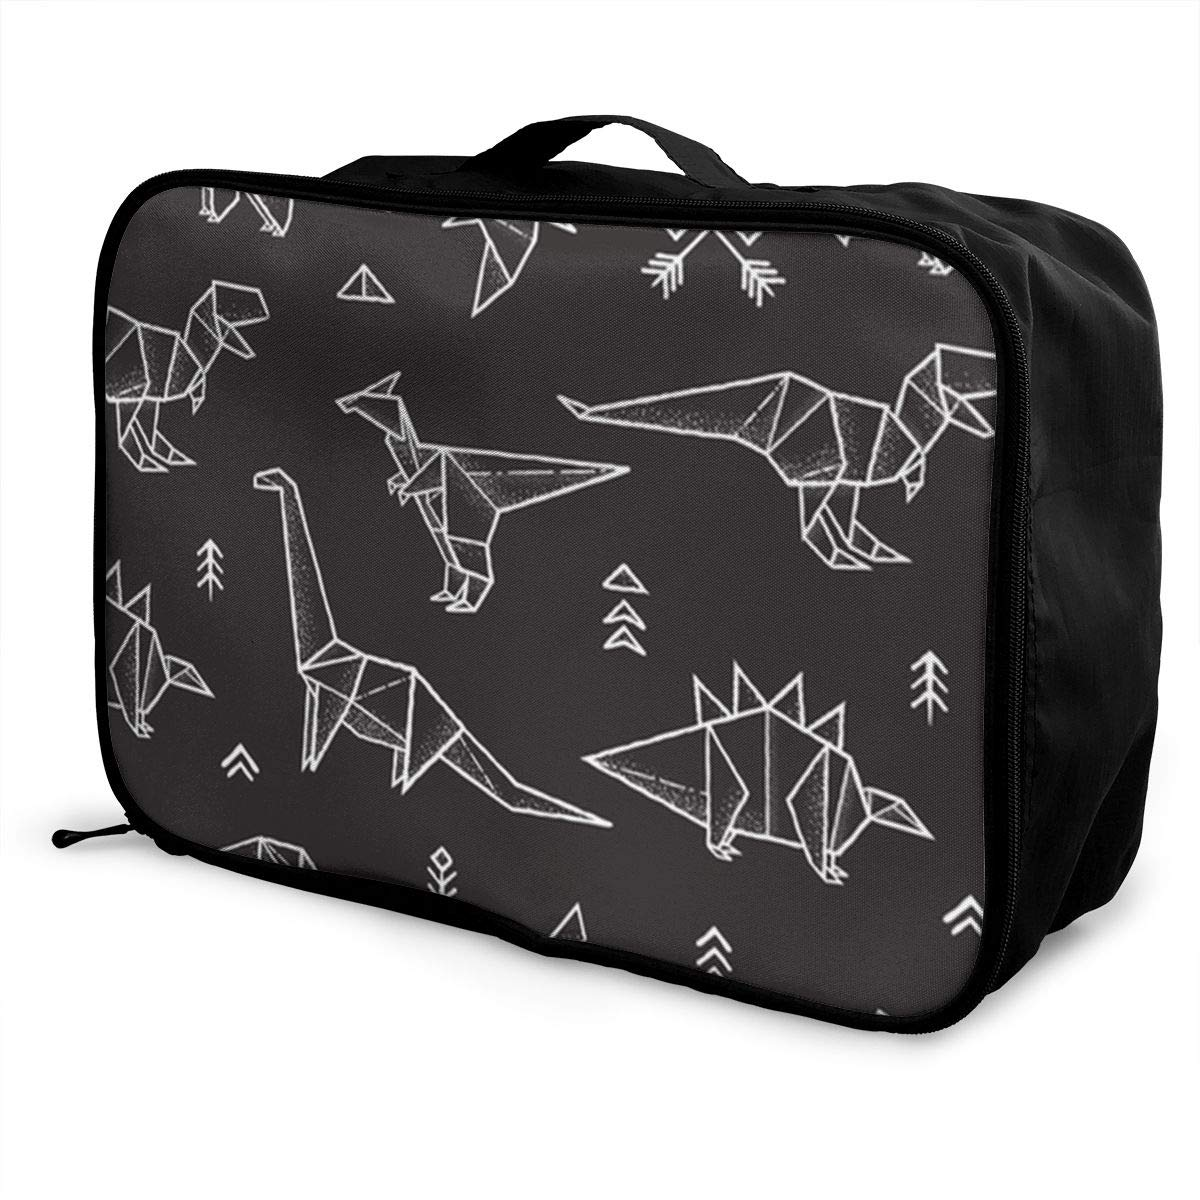 ADGAI Toy Jurassic Dinosaur Canvas Travel Weekender Bag,Fashion Custom Lightweight Large Capacity Portable Luggage Bag,Suitcase Trolley Bag